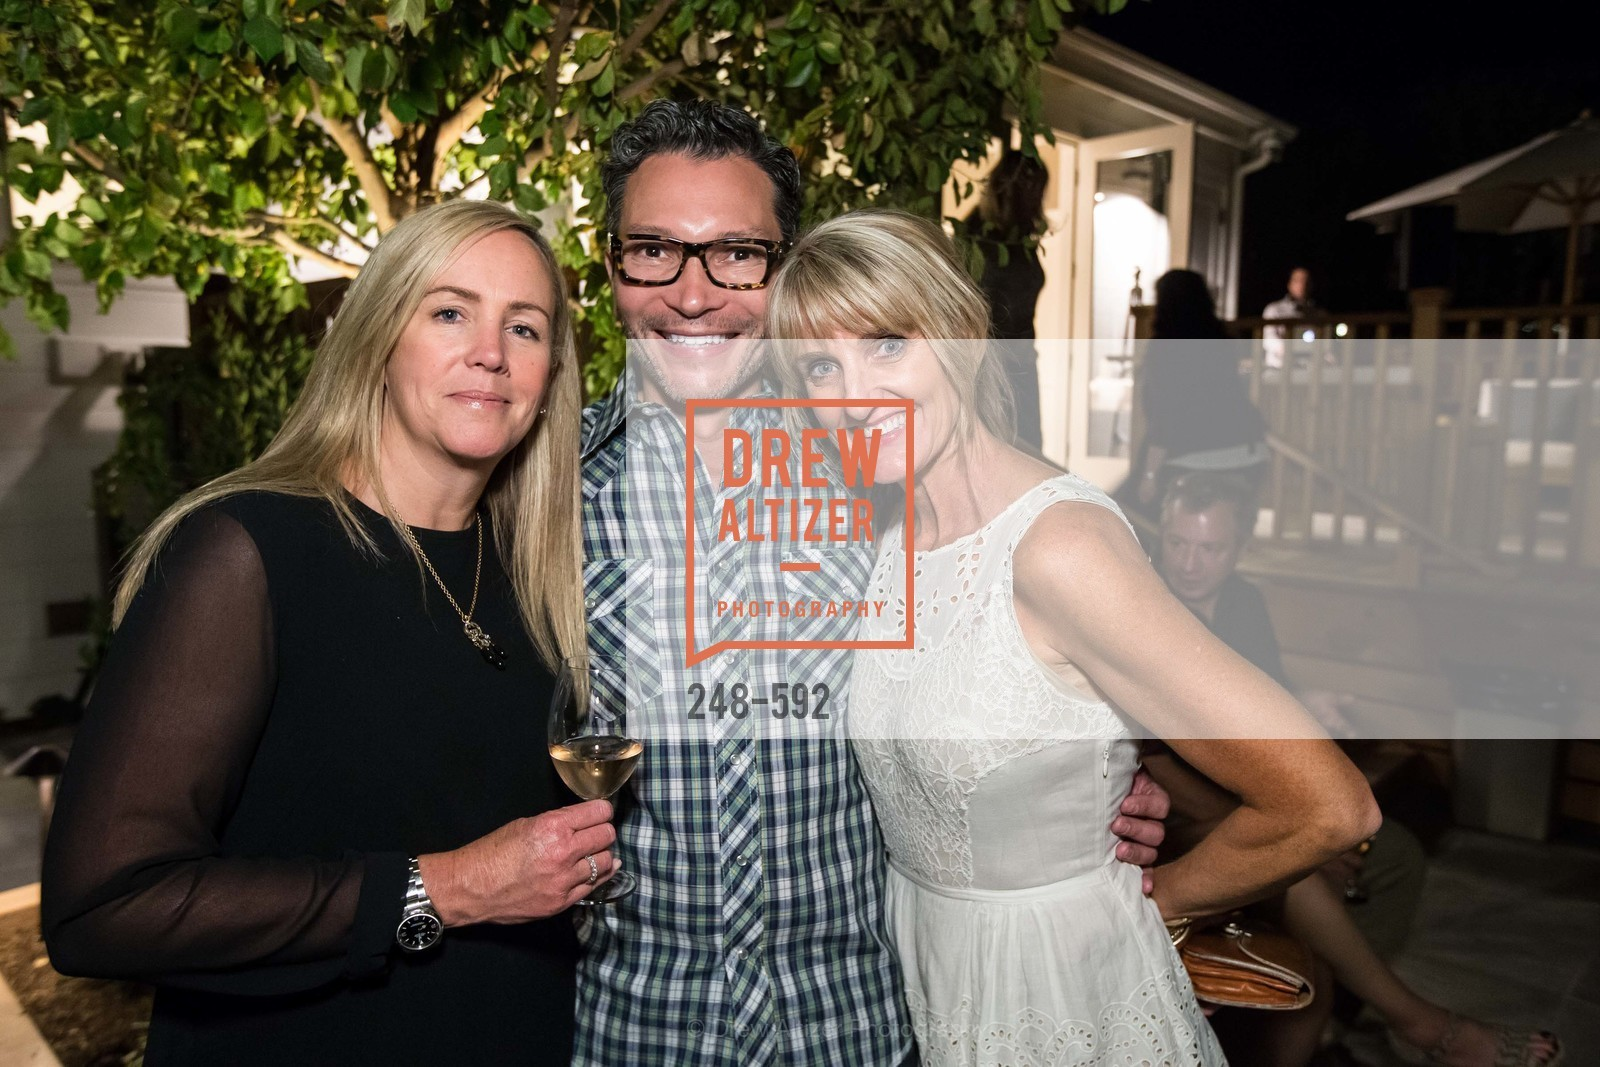 Janet Hayes, David Jimenez, Julie Neil, WILLIAMS-SONOMA Cochon BBQ Celebration, US, October 3rd, 2014,Drew Altizer, Drew Altizer Photography, full-service agency, private events, San Francisco photographer, photographer california